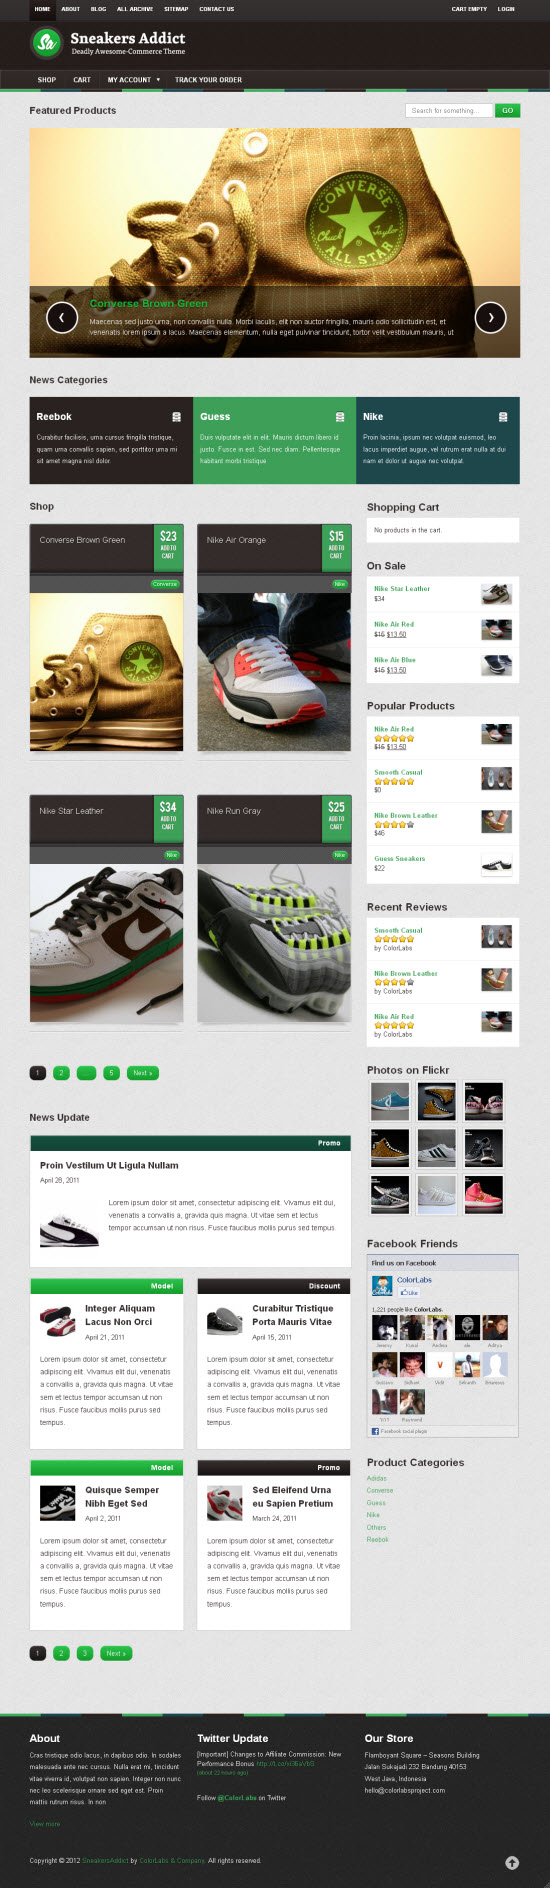 Sneakers Addict WordPress Theme